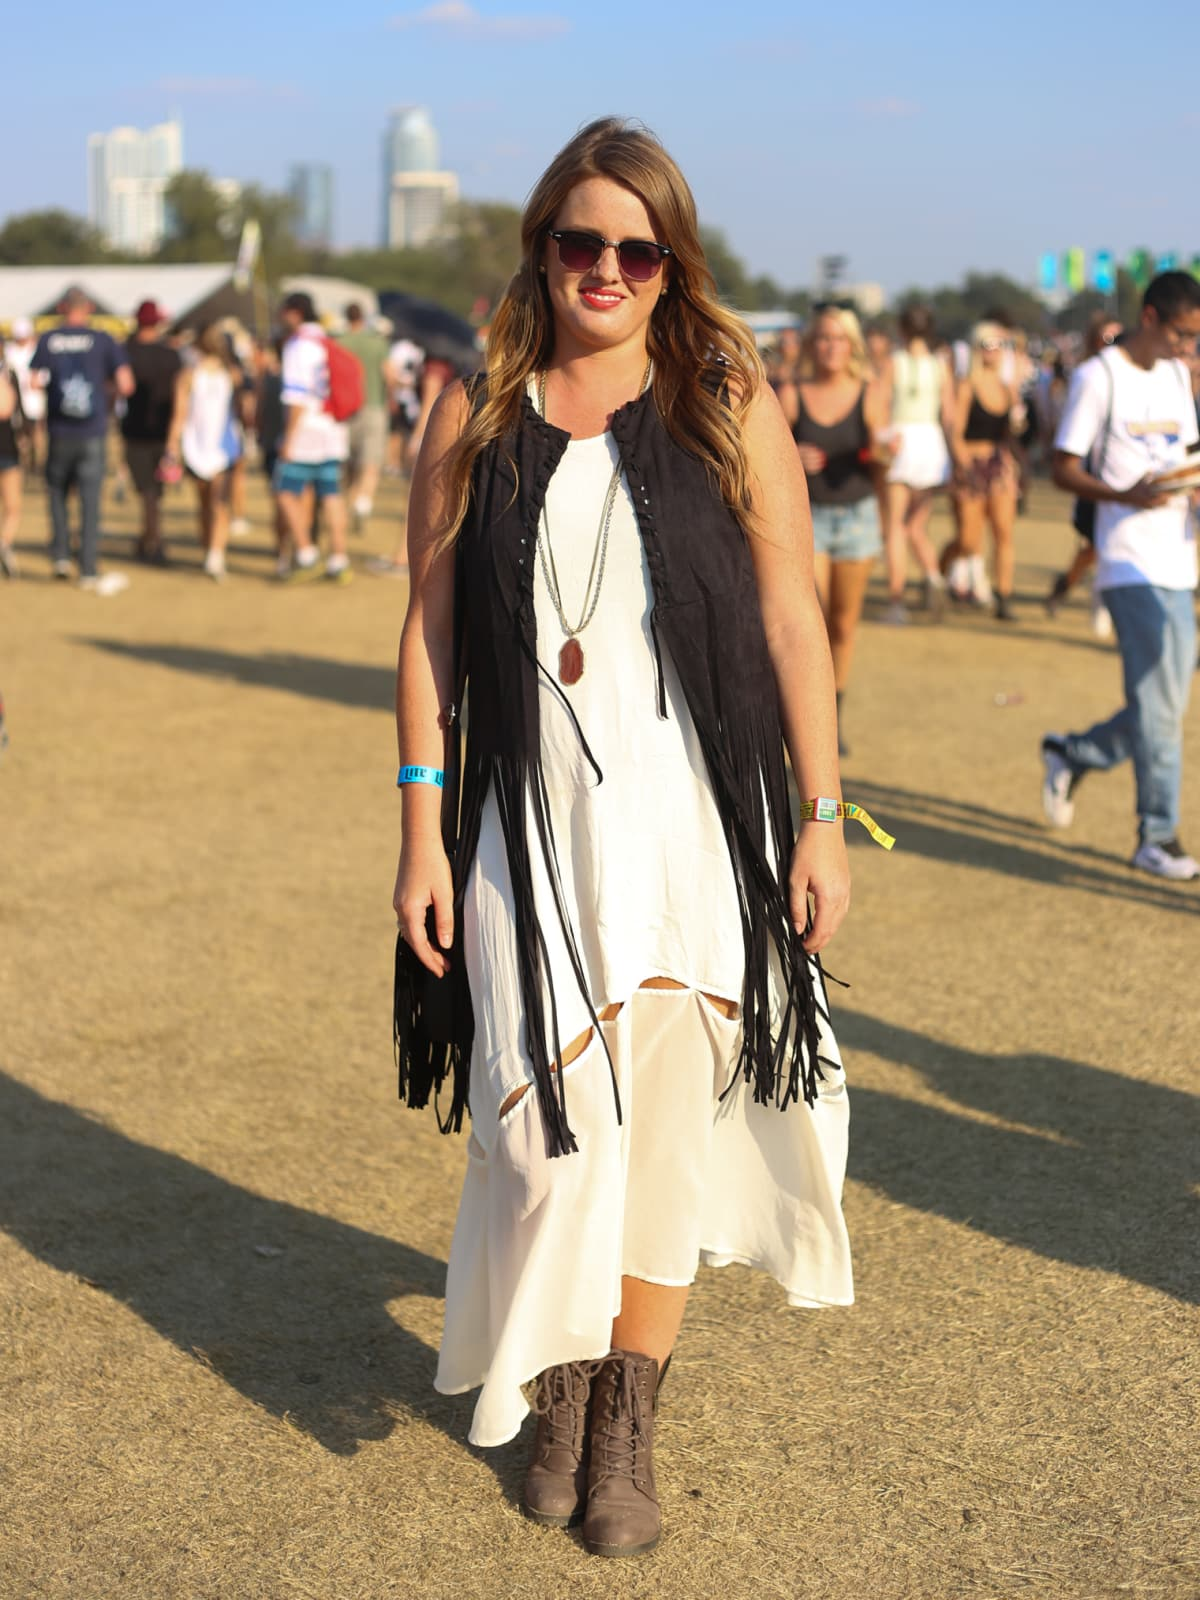 Austin City Limits Festival ACL 2015 Street Style Rebecca Hawkins